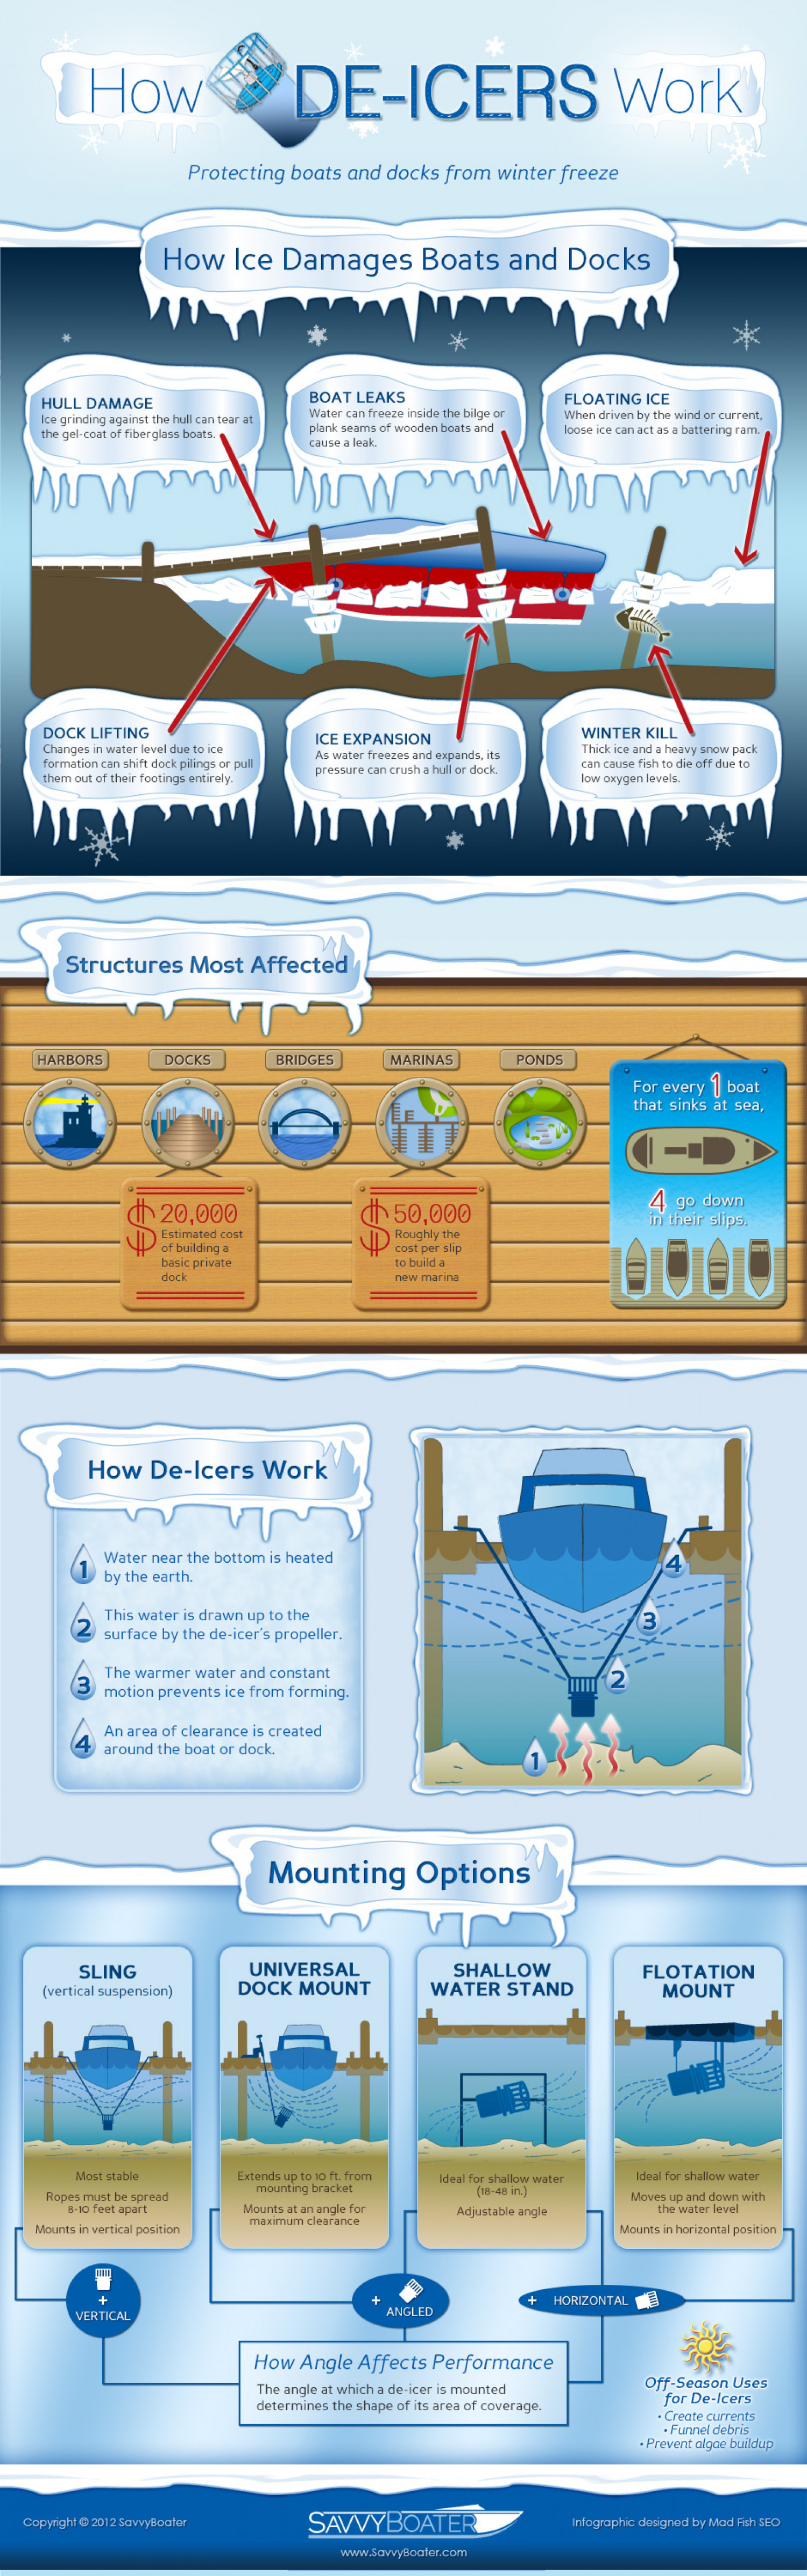 How De-icers Work Infographic